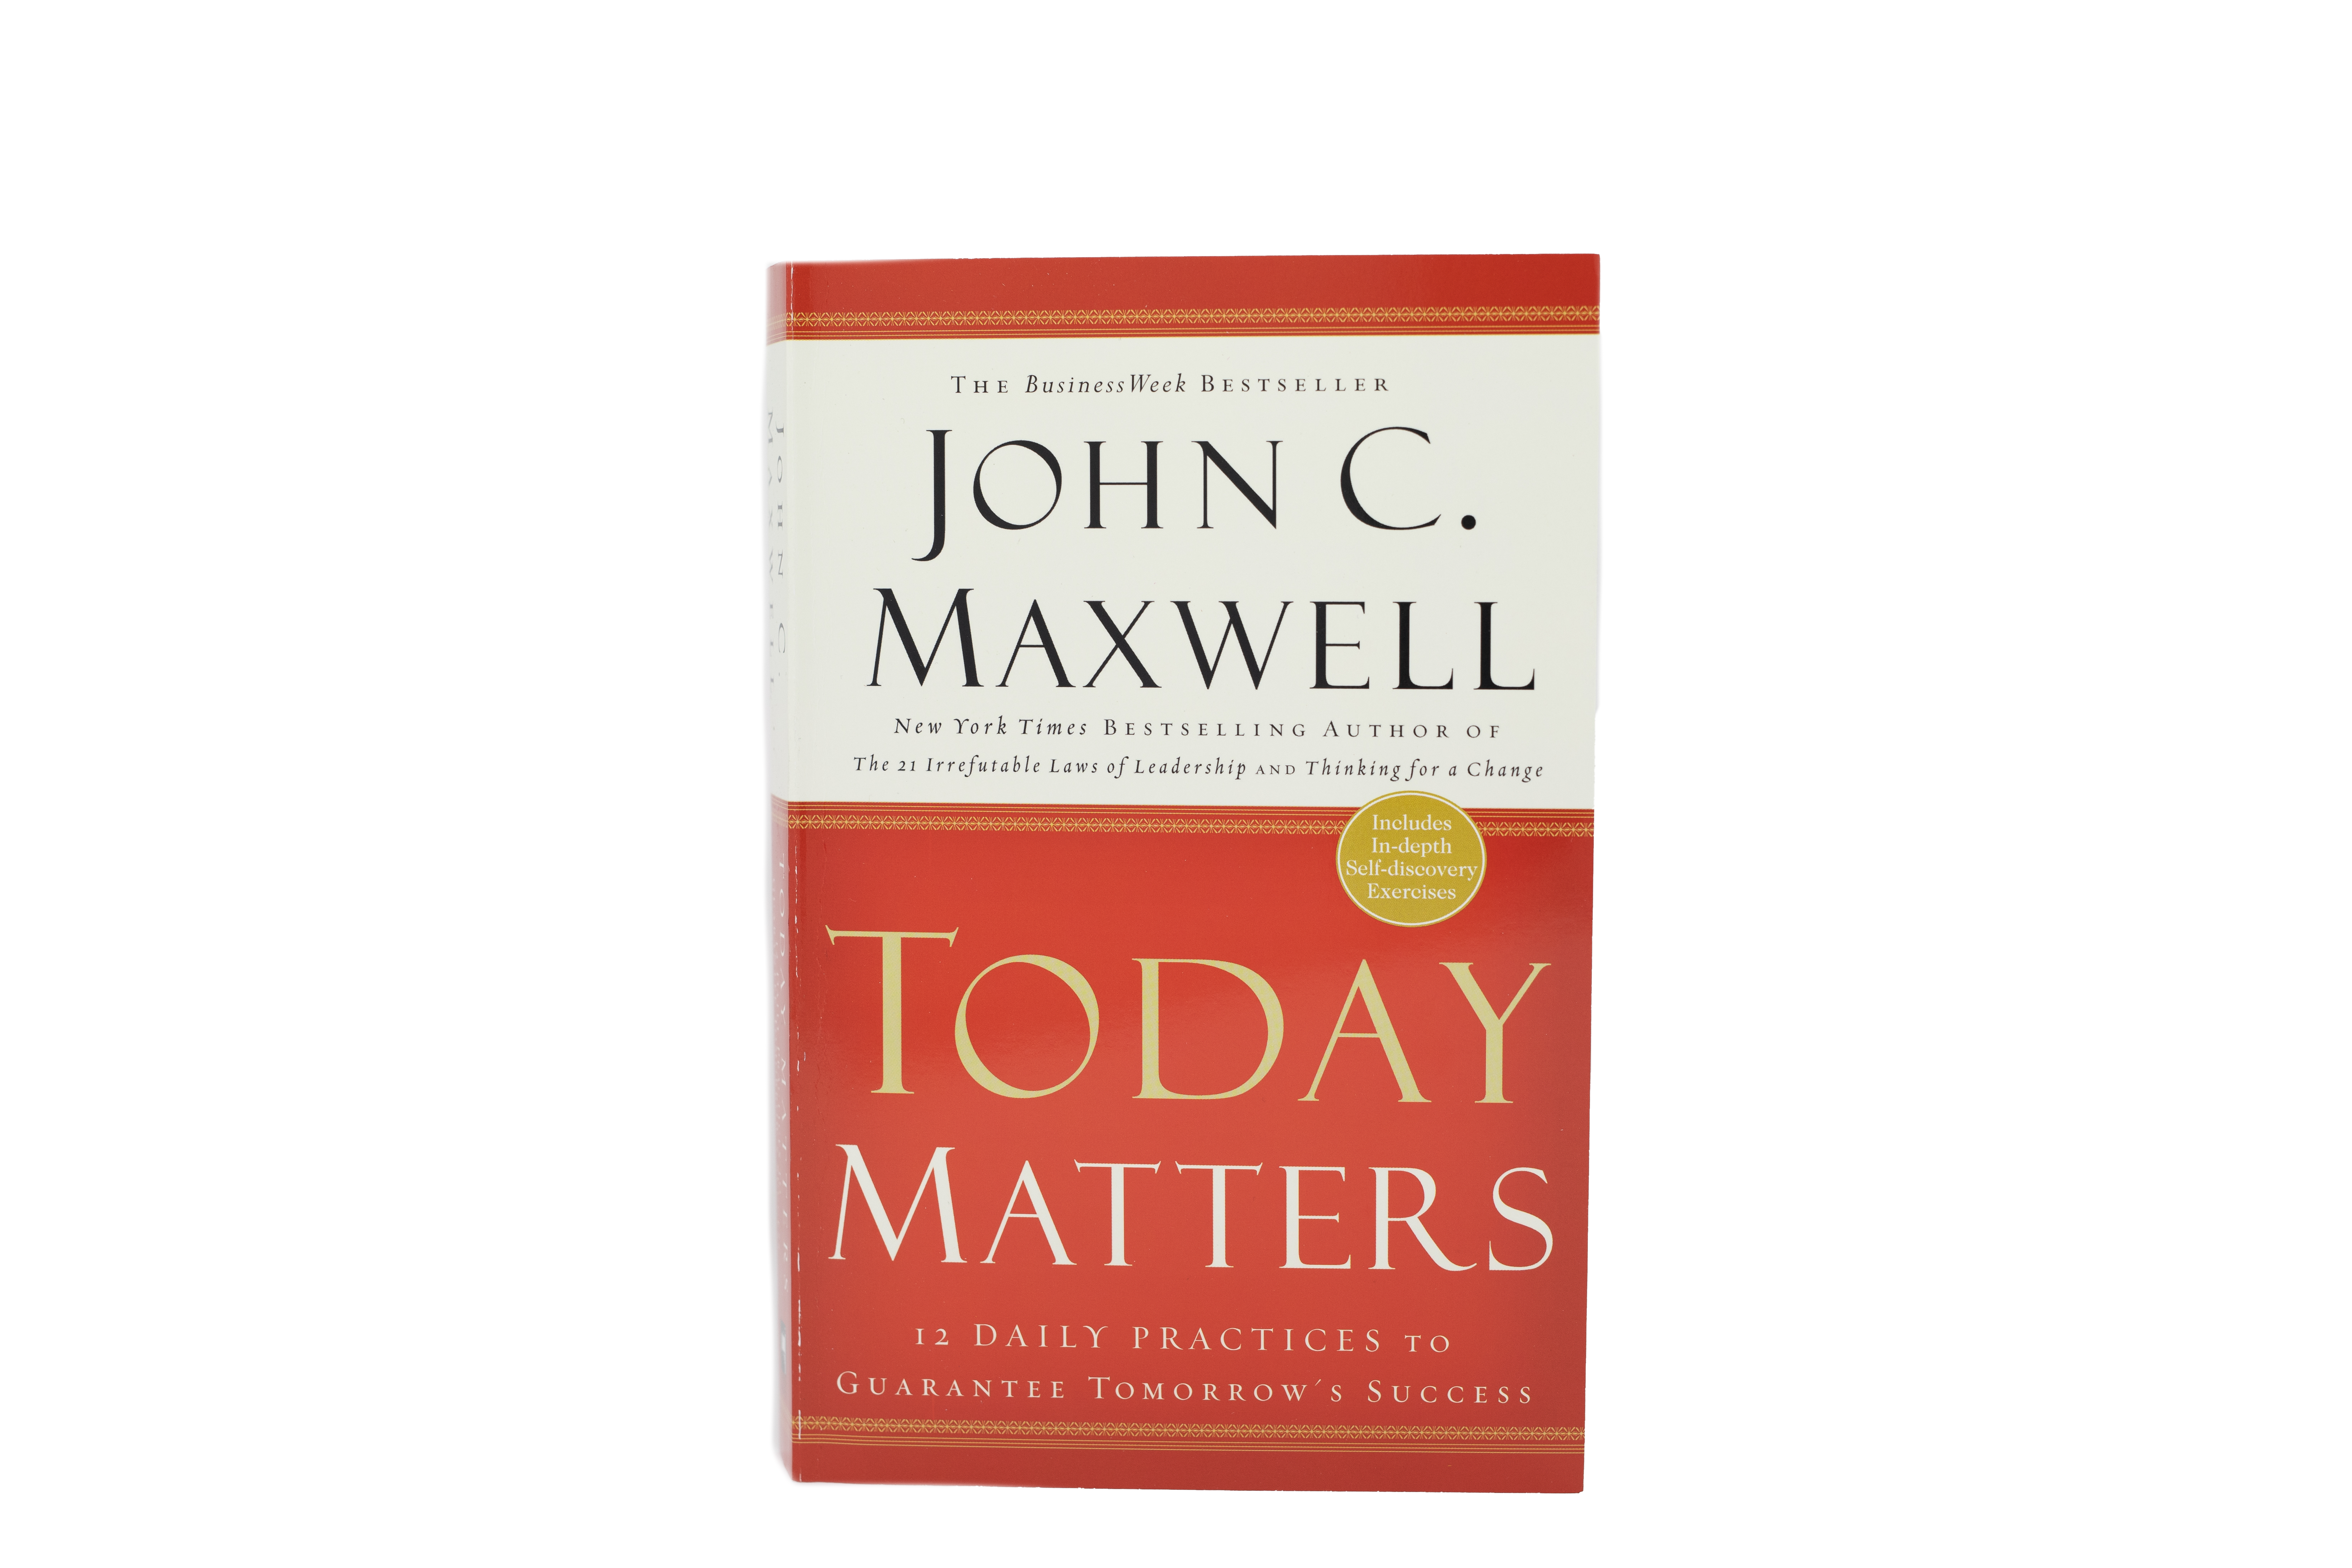 Today Matters [Paperback]